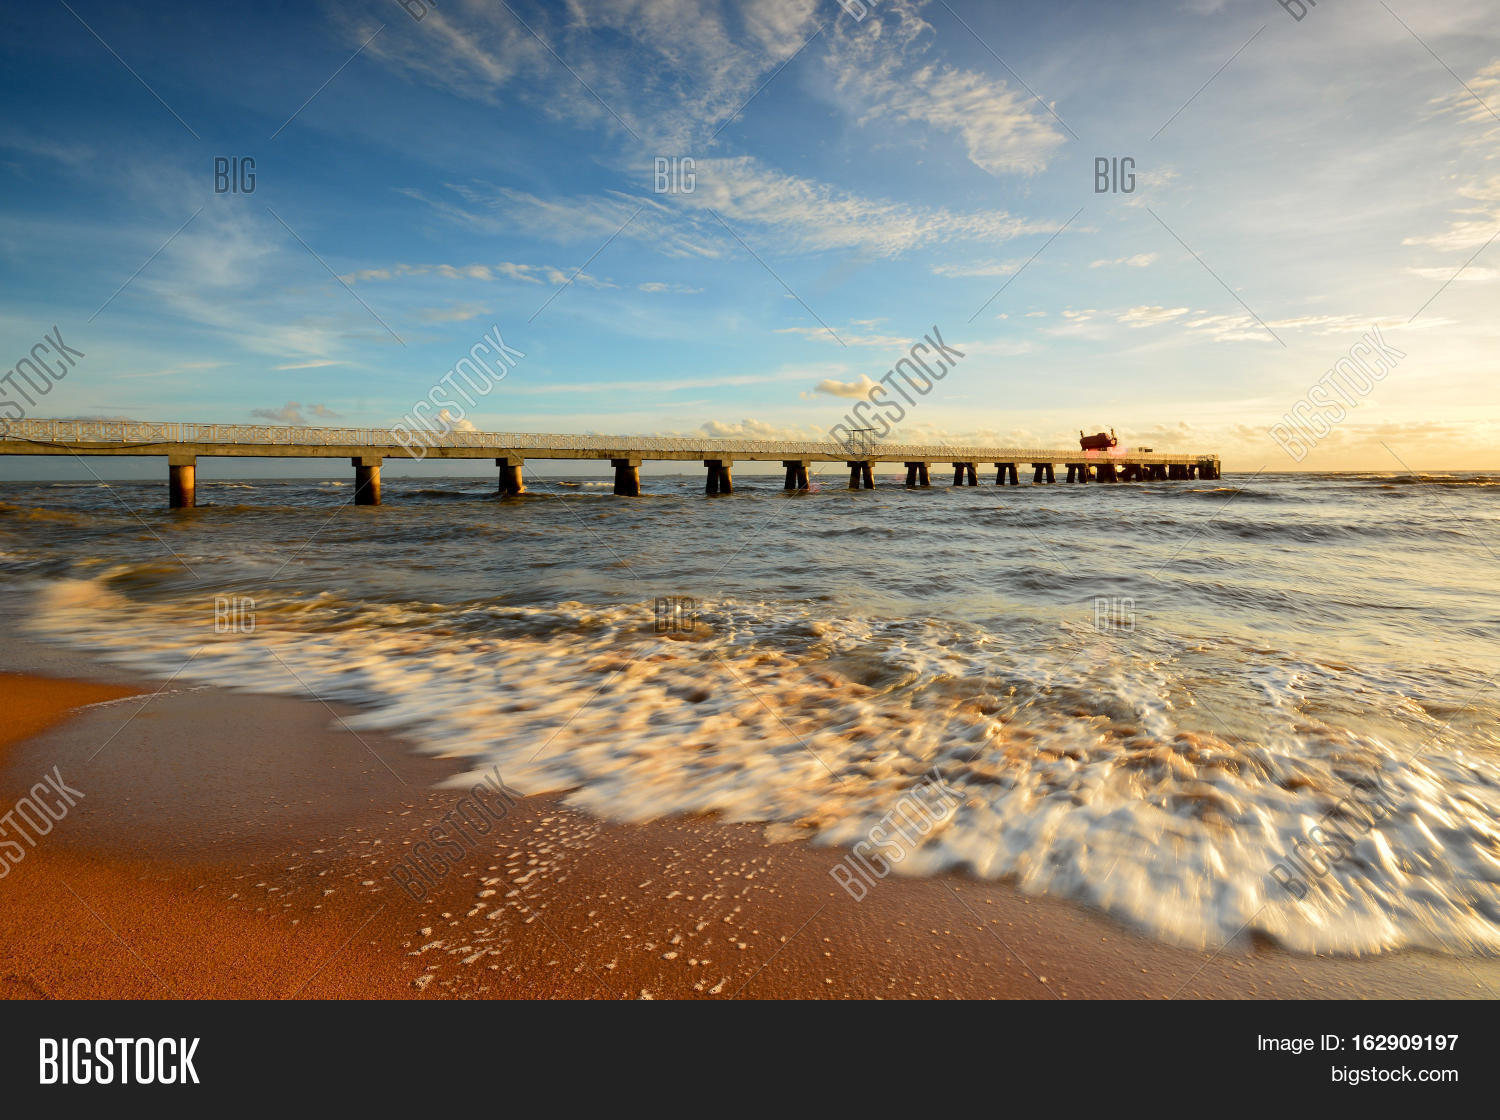 Beautiful Scenery Of Sunset Sky At Beach With Wave Motion Foreground And Long Jetty